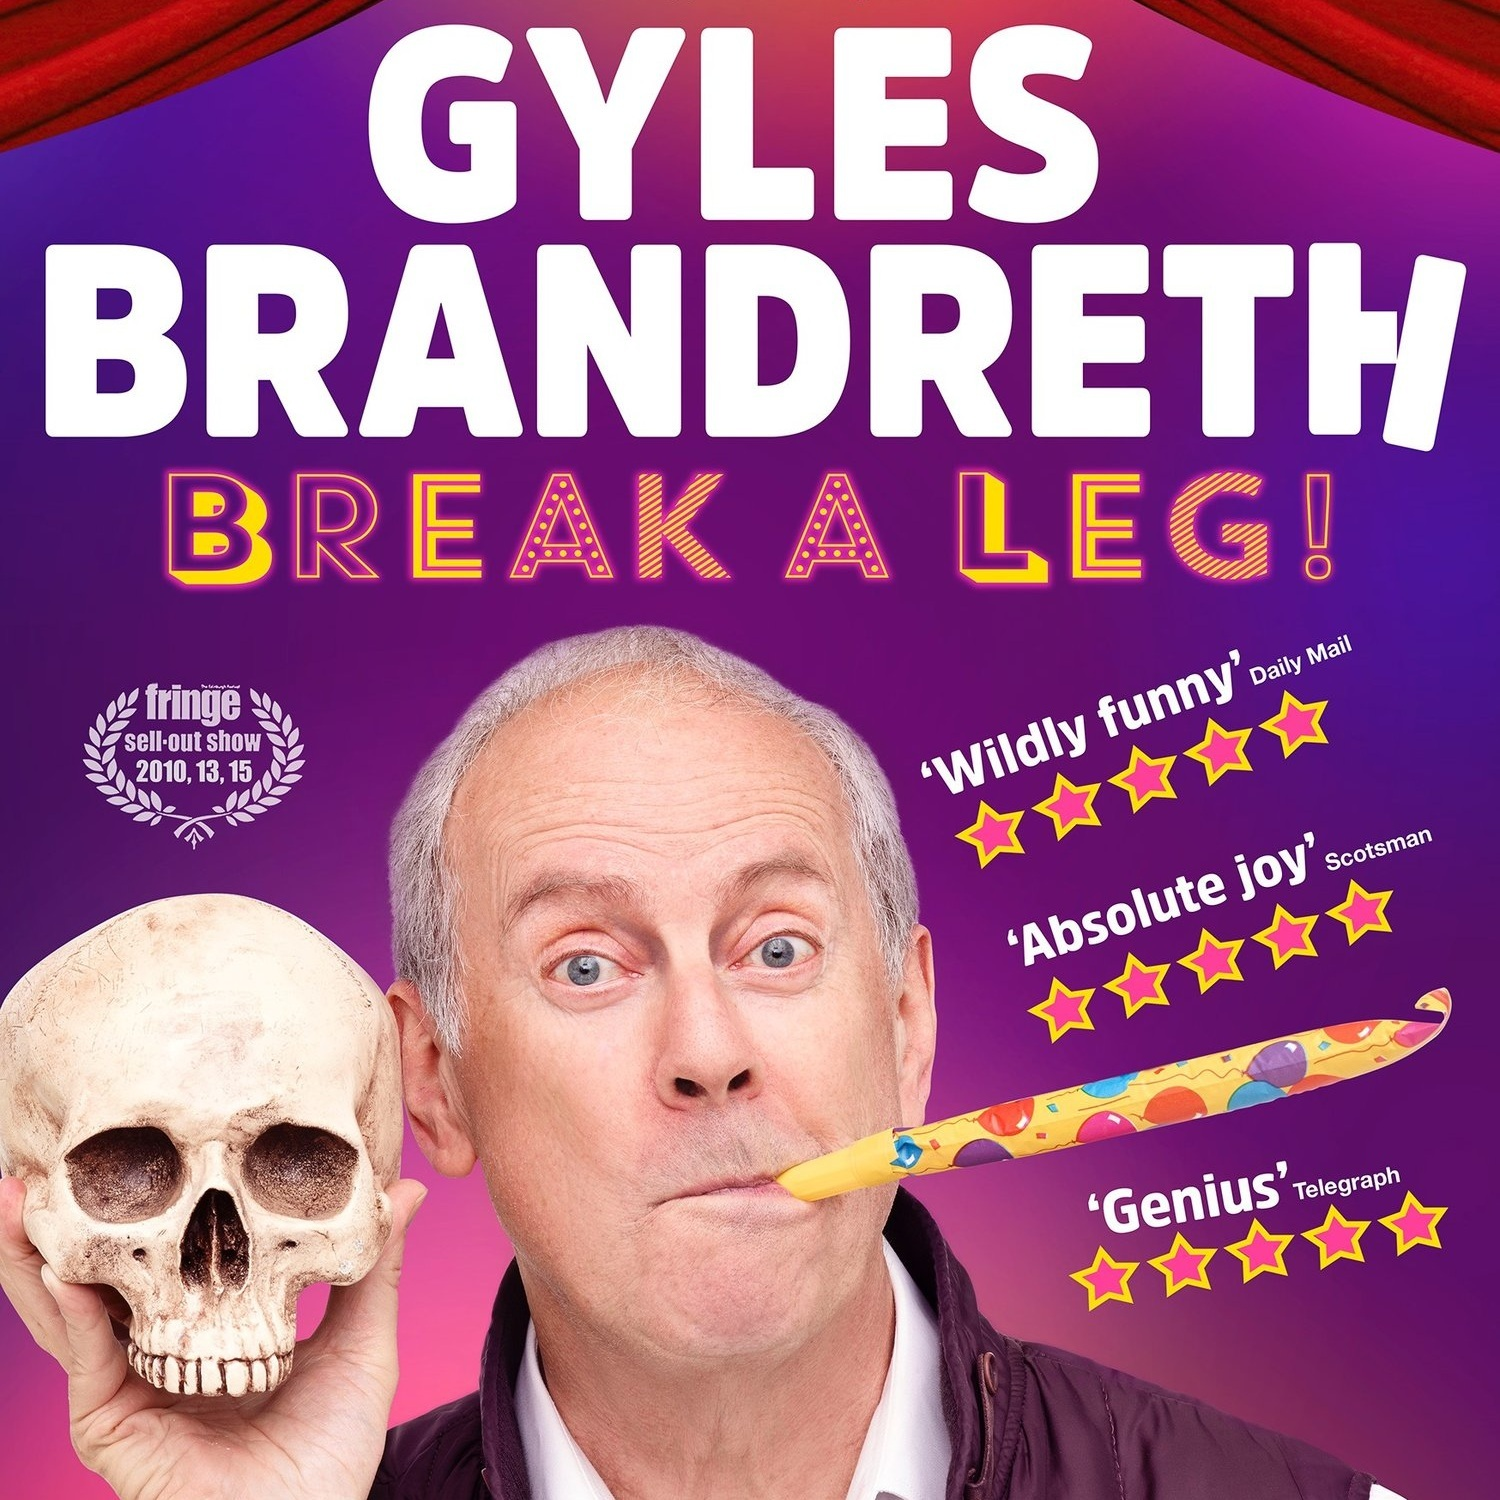 one-man showS - With multiple five star reviews and sell-out shows in Edinburgh, in London and across the UK, this is Gyles Brandreth's latest one-man show: BREAK A LEG! is a celebration of all things theatrical. This is Brandreth unleashed on the stars he's known and the theatre stories that have made him laugh – and, occasionally, cry. Without hesitation or repetition (and just a touch of deviation), Just a Minute regular Gyles delivers a dazzling two hours of wit, wisdom, high drama, low comedy, and hilarious name-dropping.